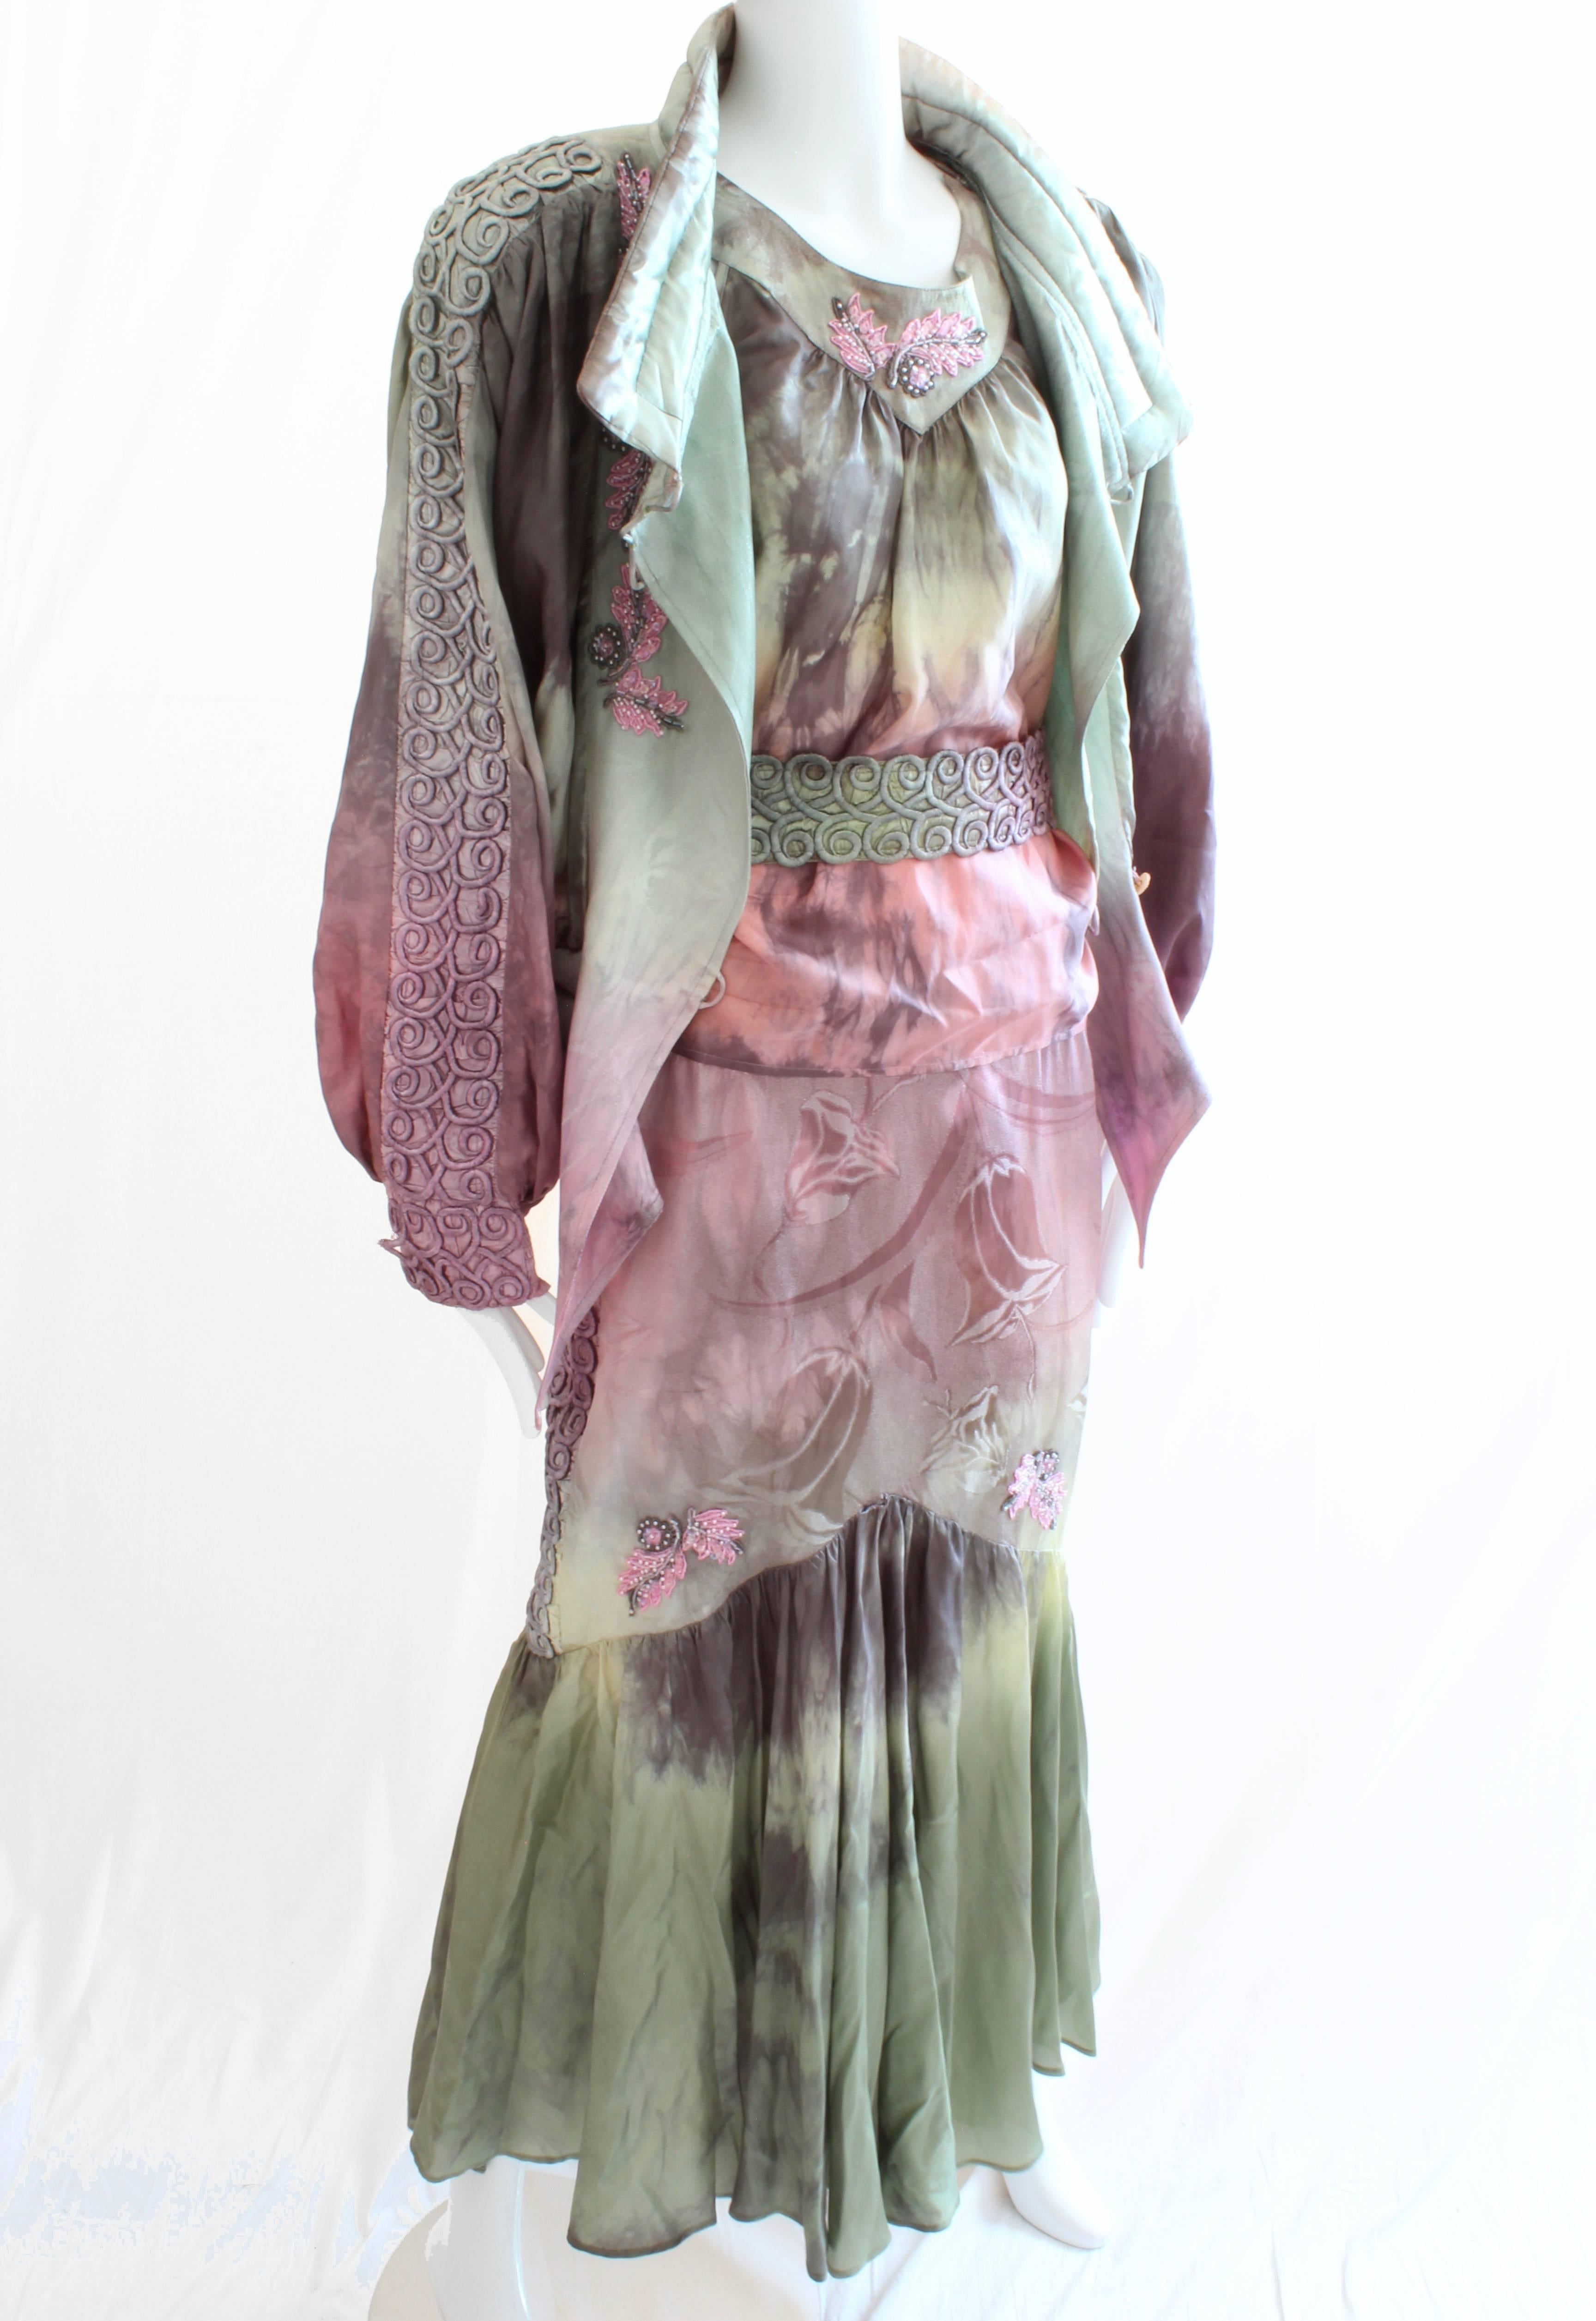 185edaa9ffe Silk Tie-Dye Suit Bomber Jacket Top Skirt and Belt 4 Piece Set, 1980s For  Sale at 1stdibs